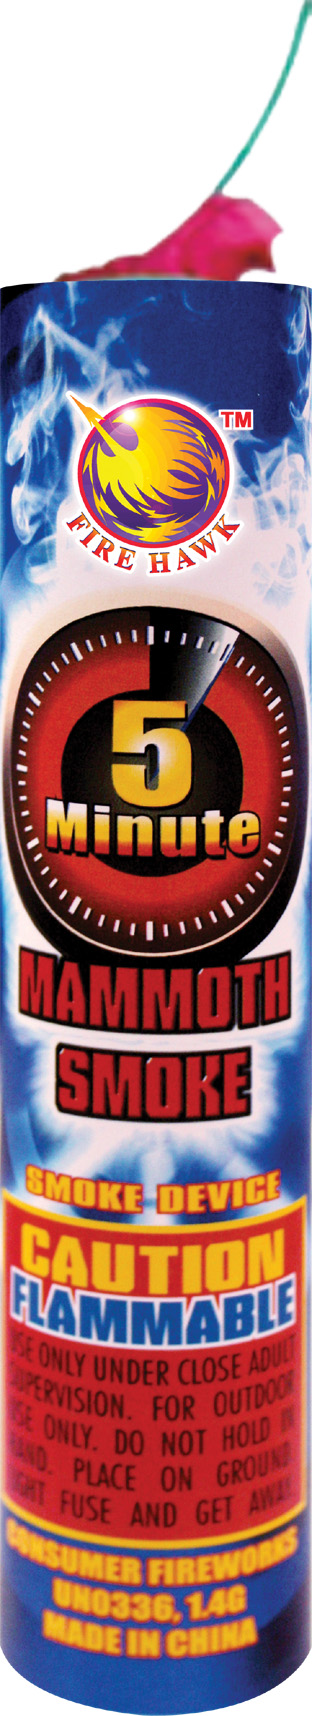 FB8523 5 Minute Mammoth smoke